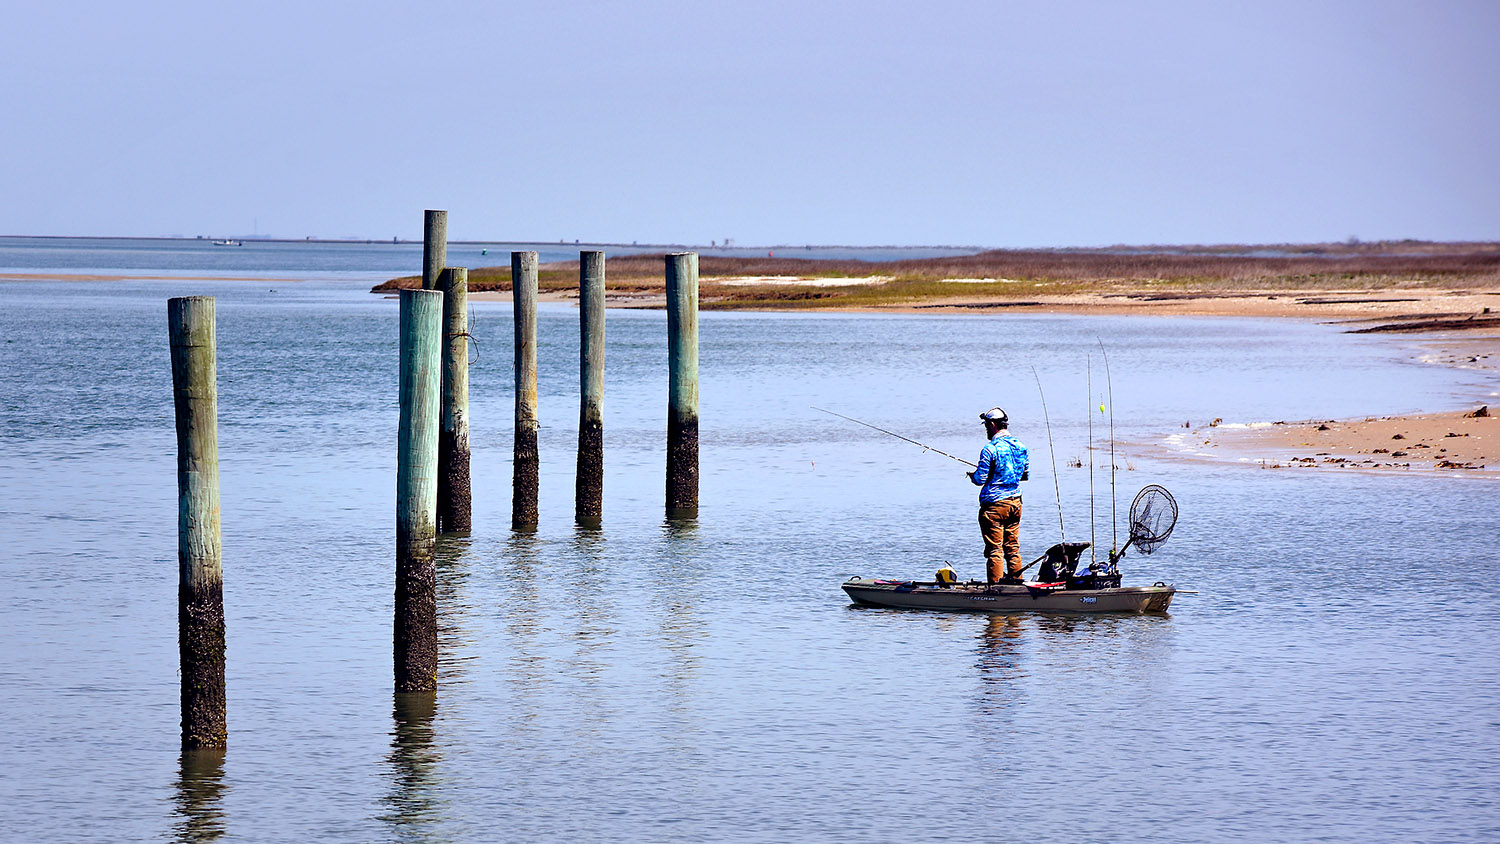 A fisherman tries his luck fishing Barden Inlet along the Cape Lookout shoreline.